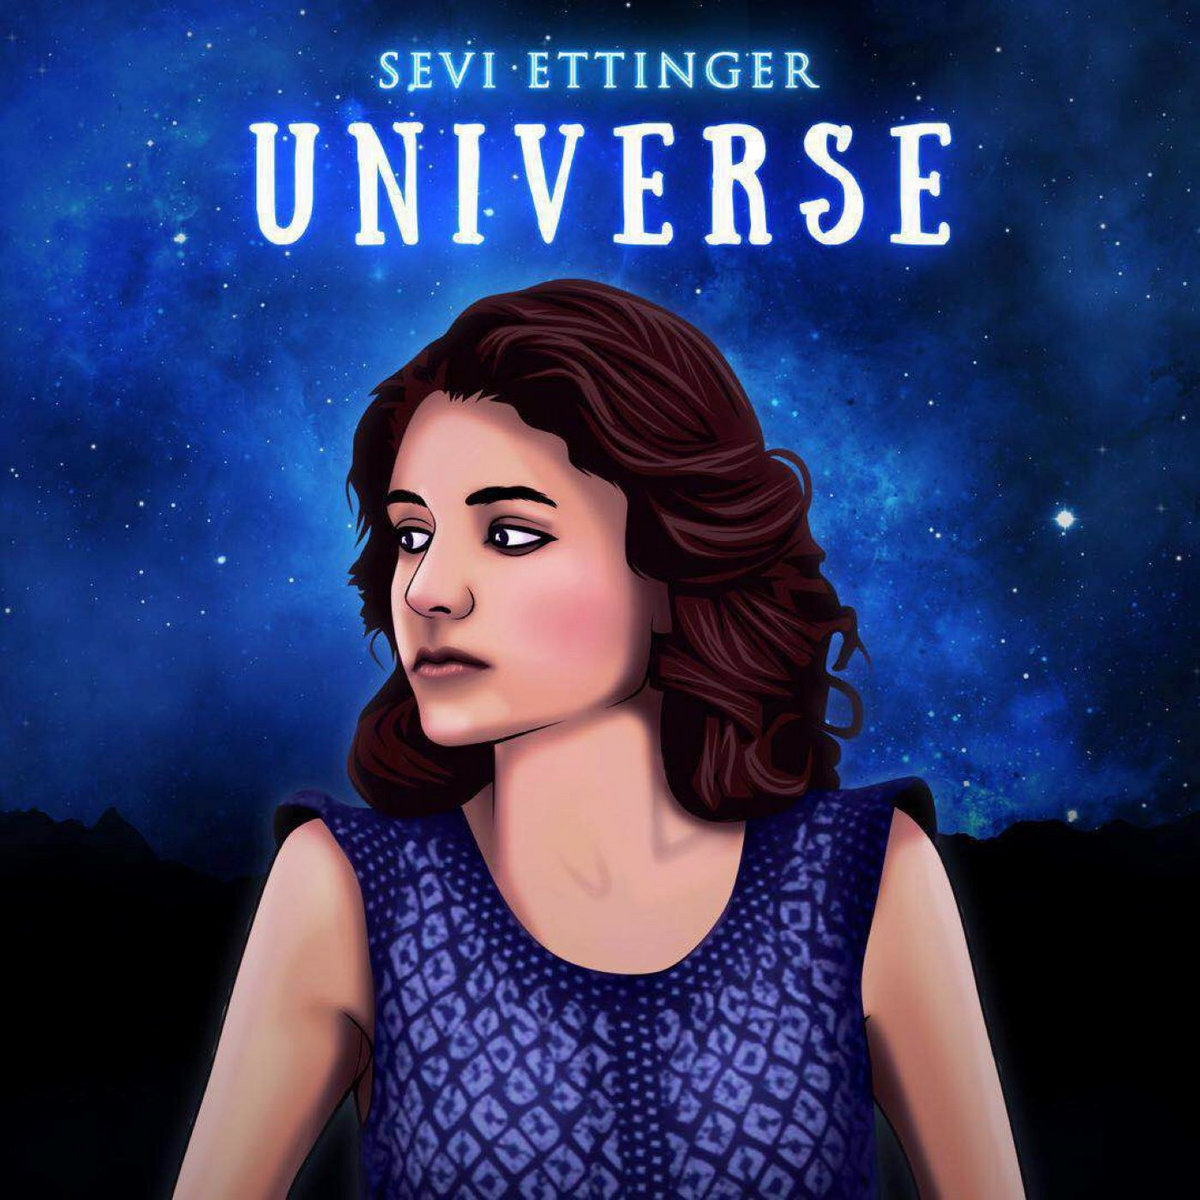 Universe by Sevi Ettinger